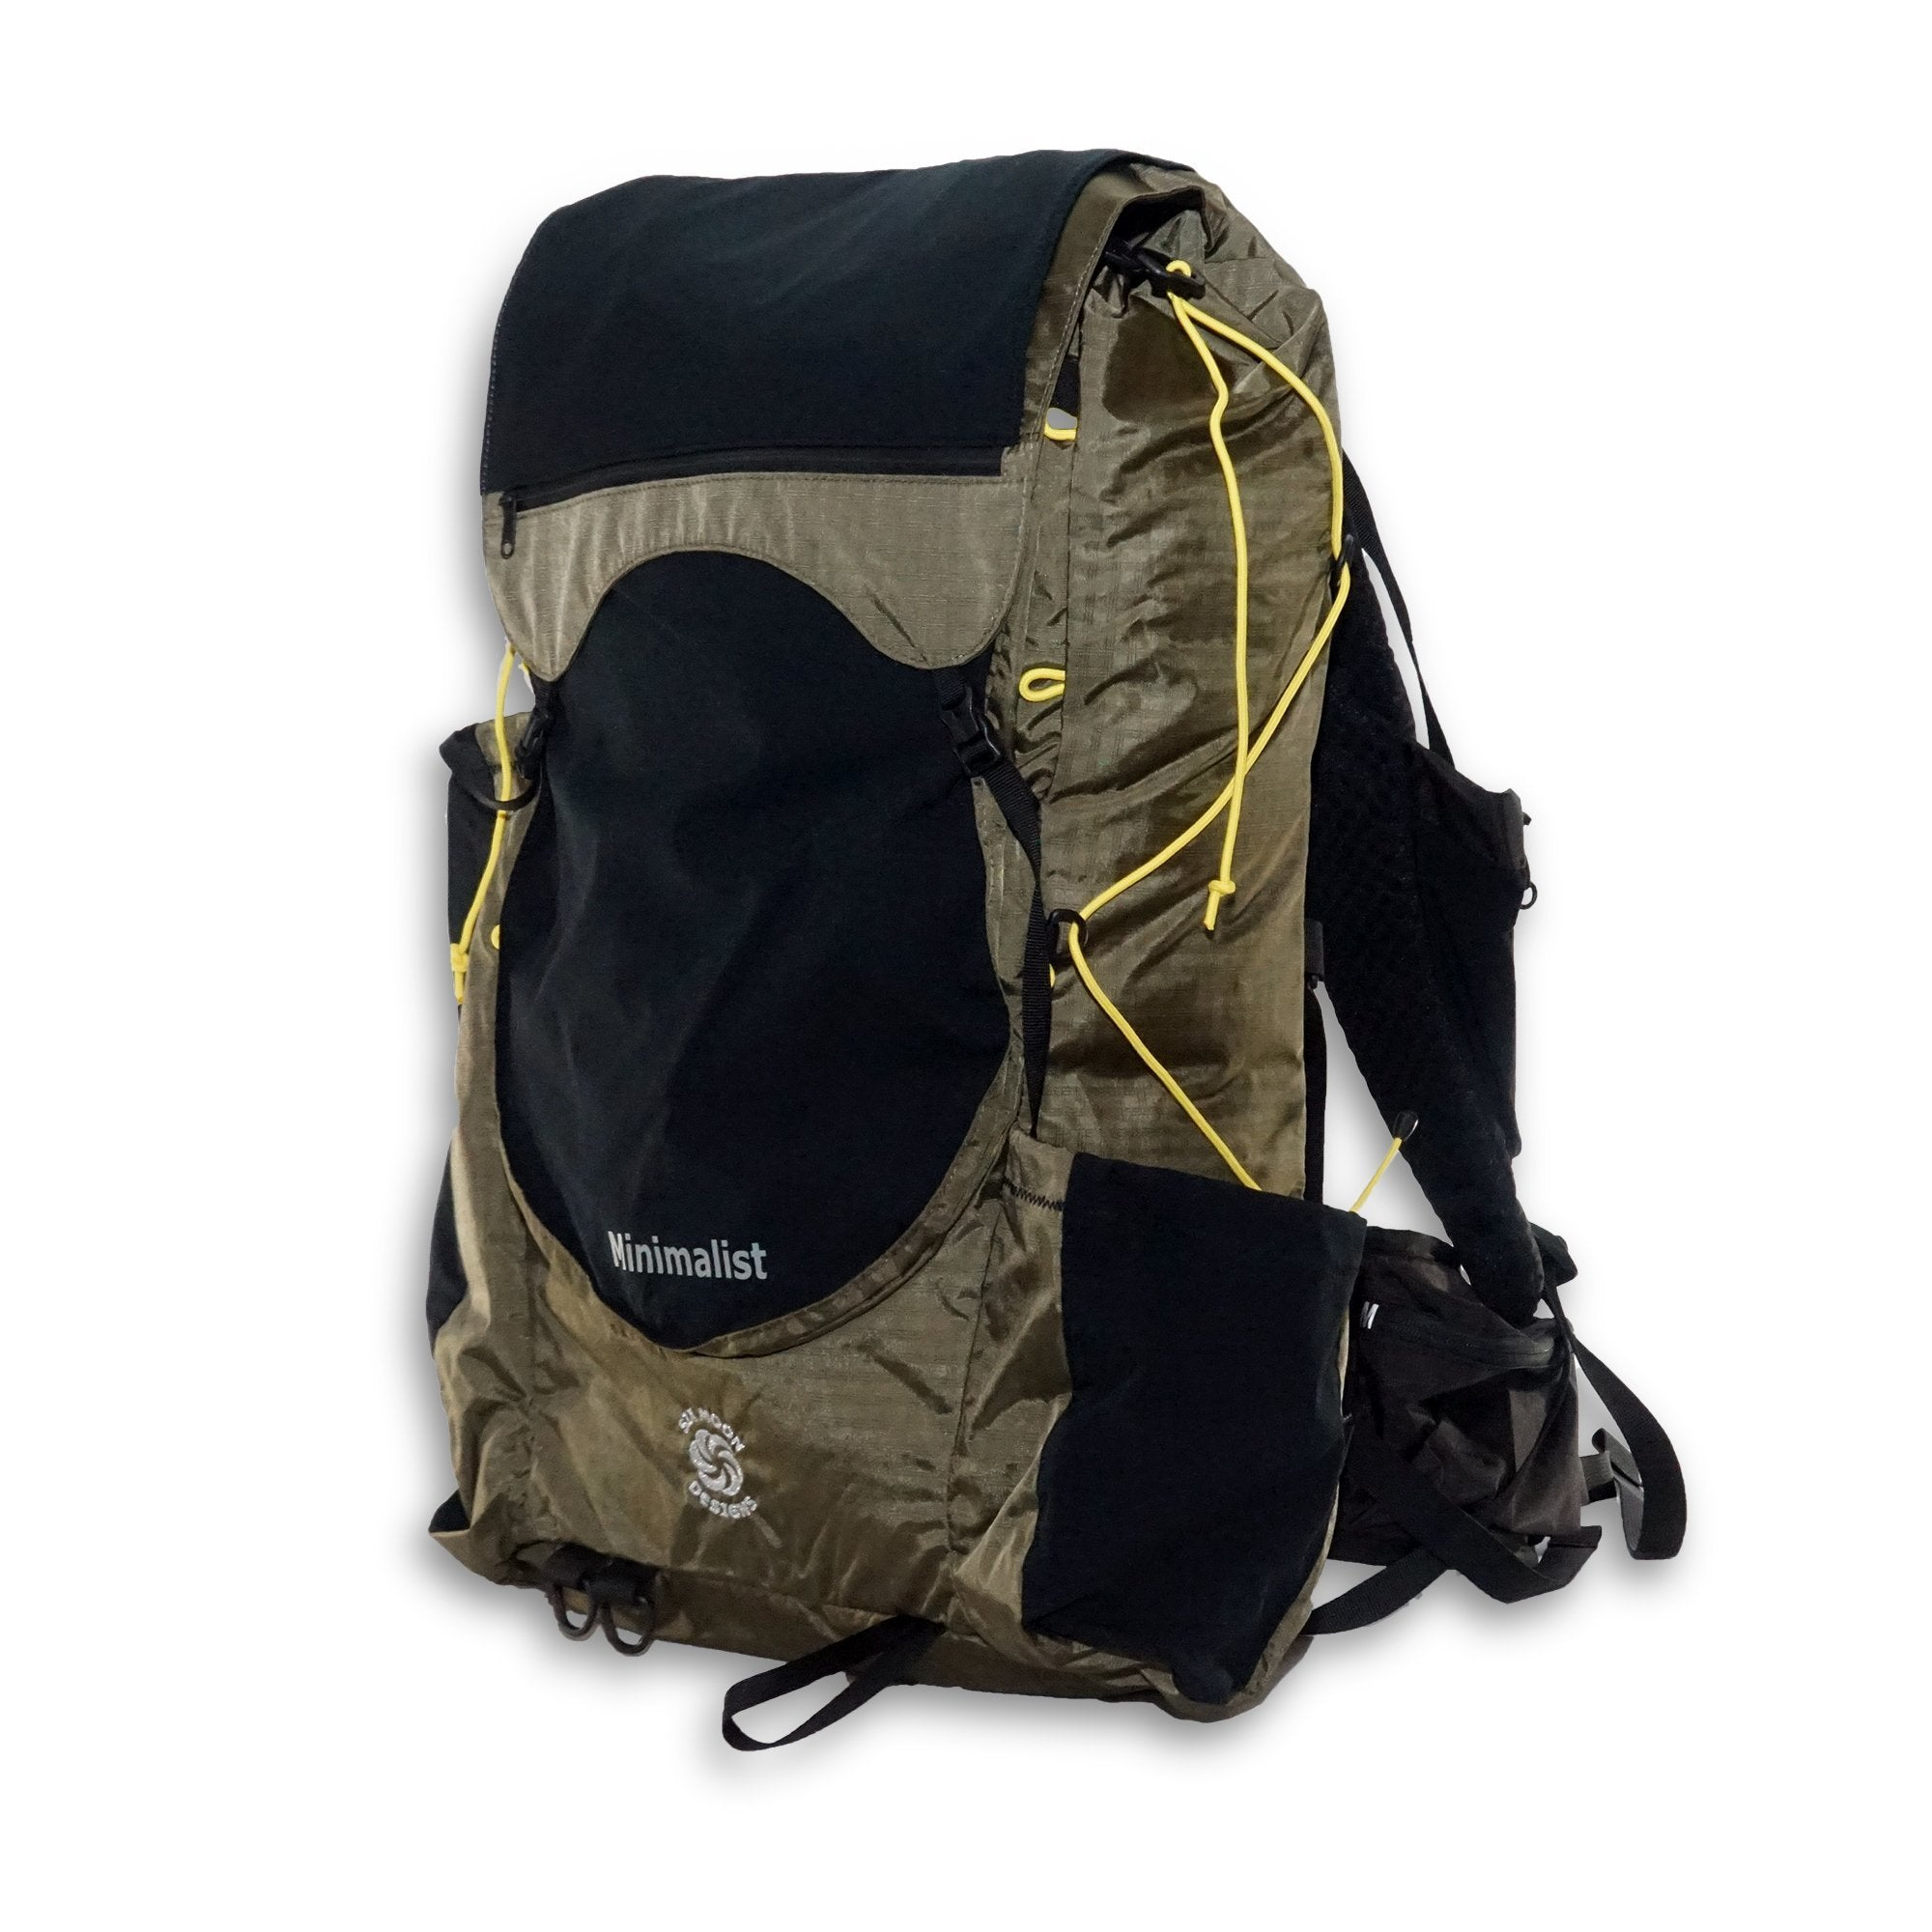 MINIMALIST V2 ULTRALIGHT BACKPACK